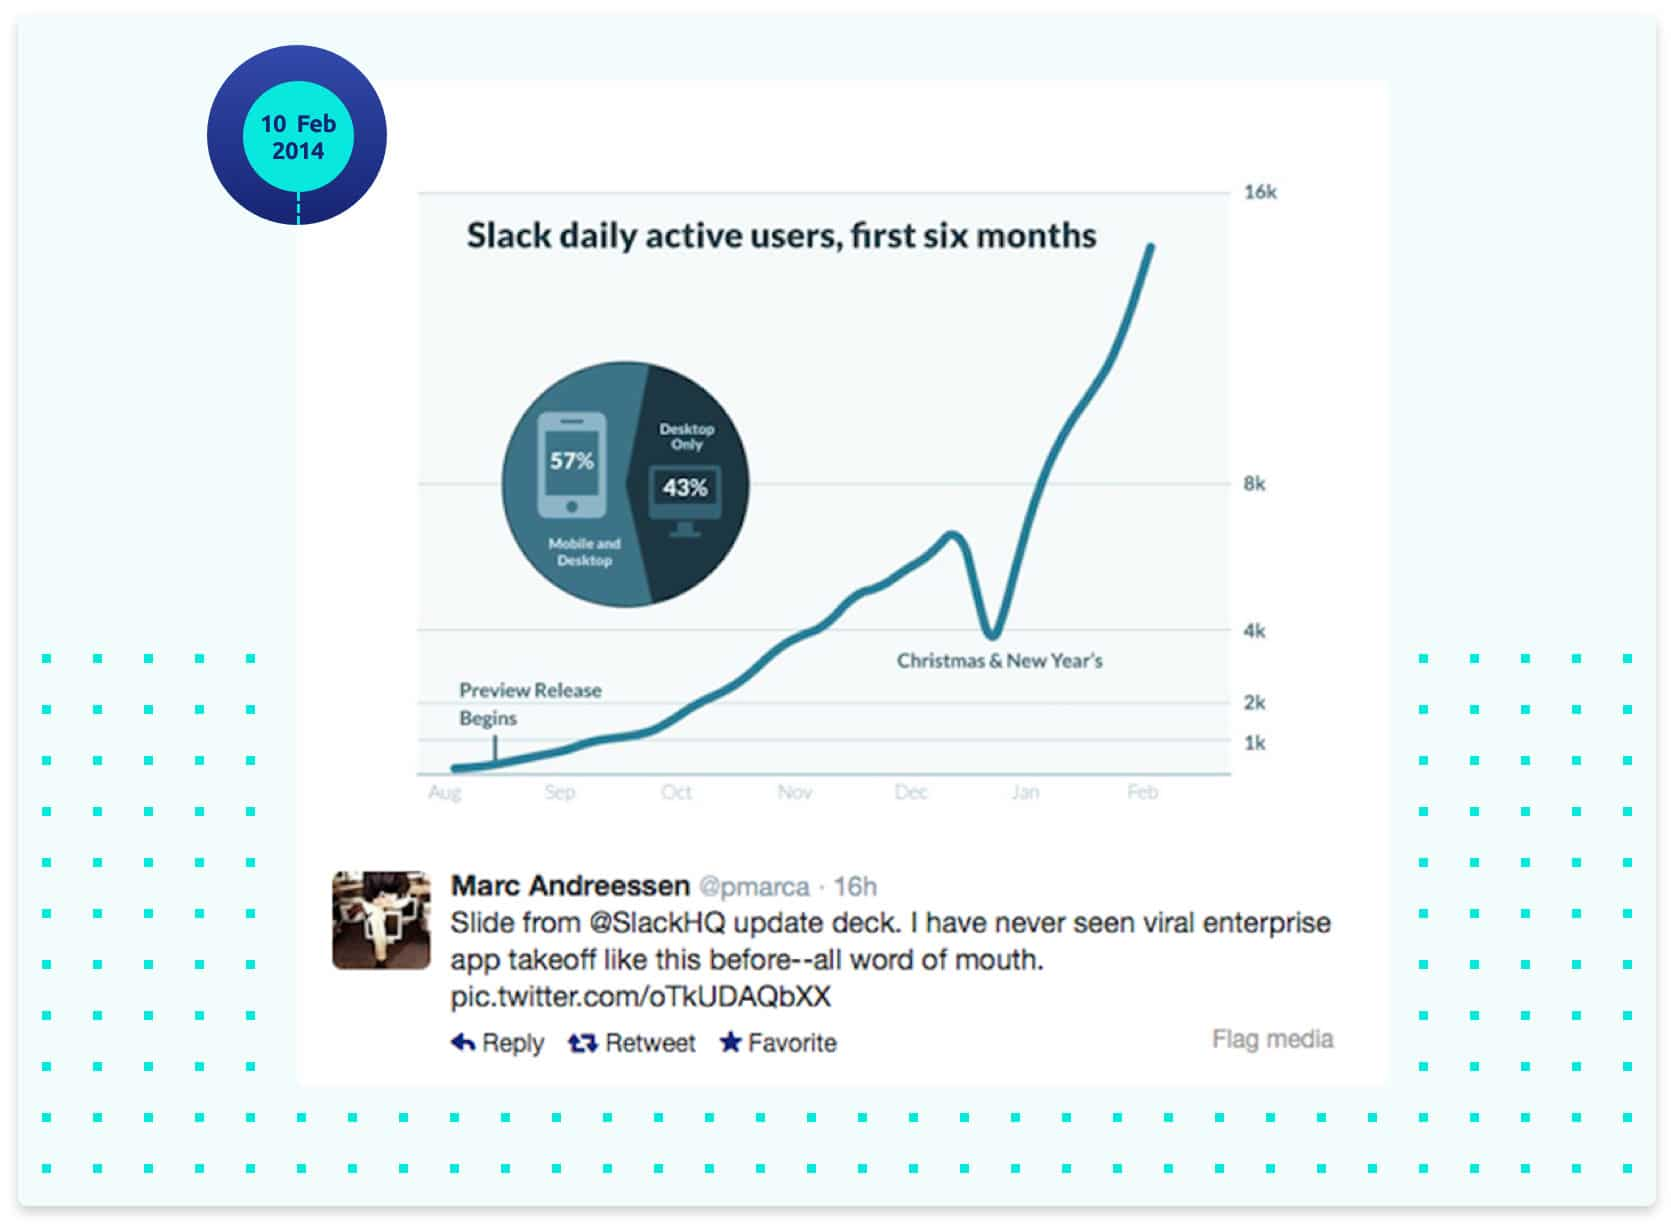 Slack daily active users